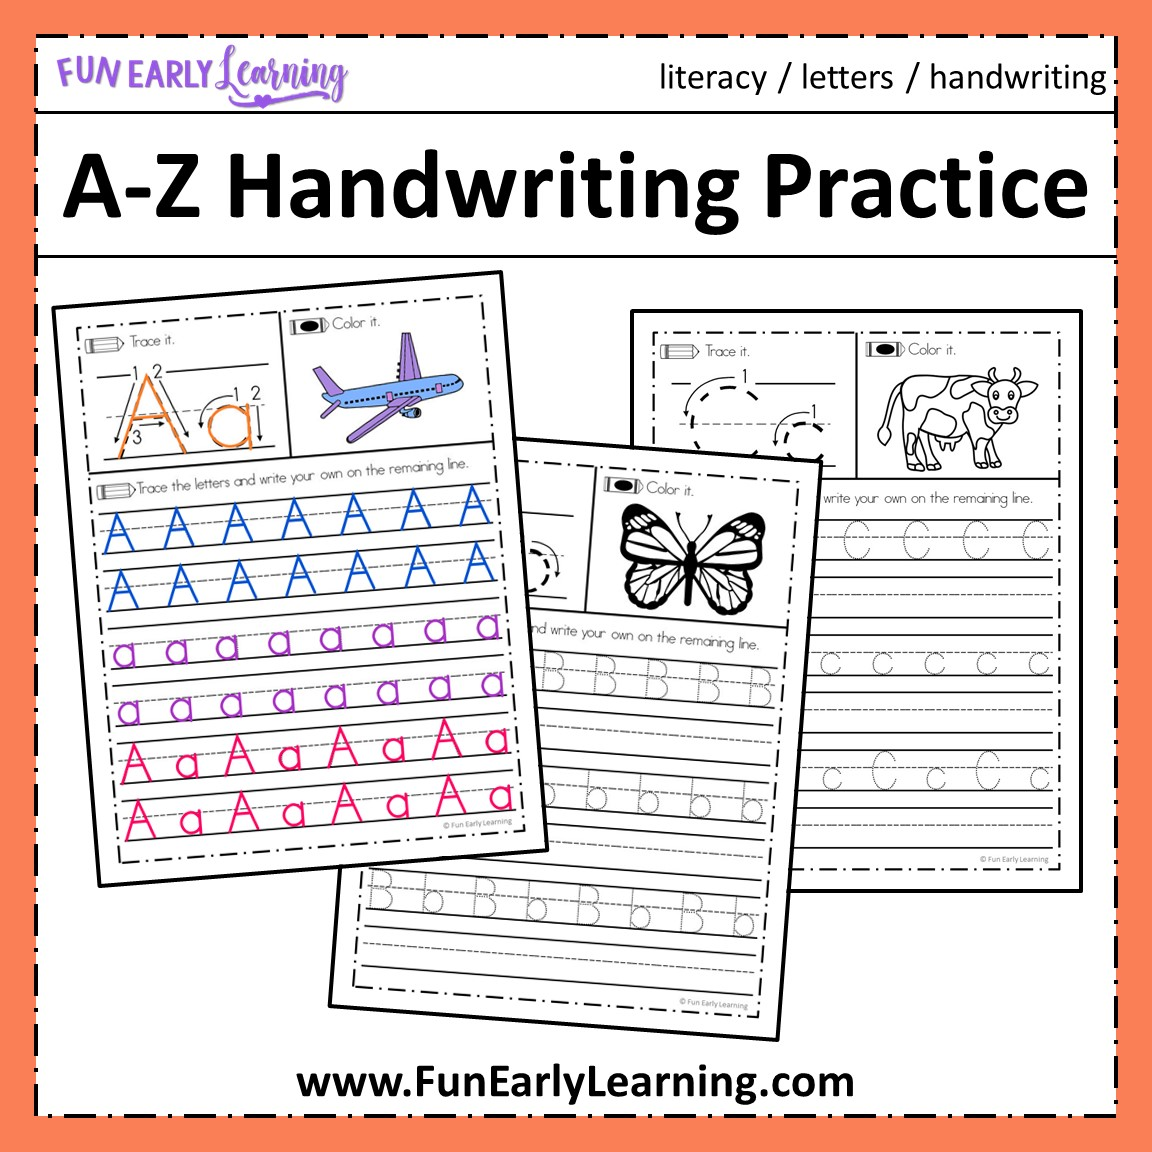 Free Printable Alphabet Handwriting Practice Sheets